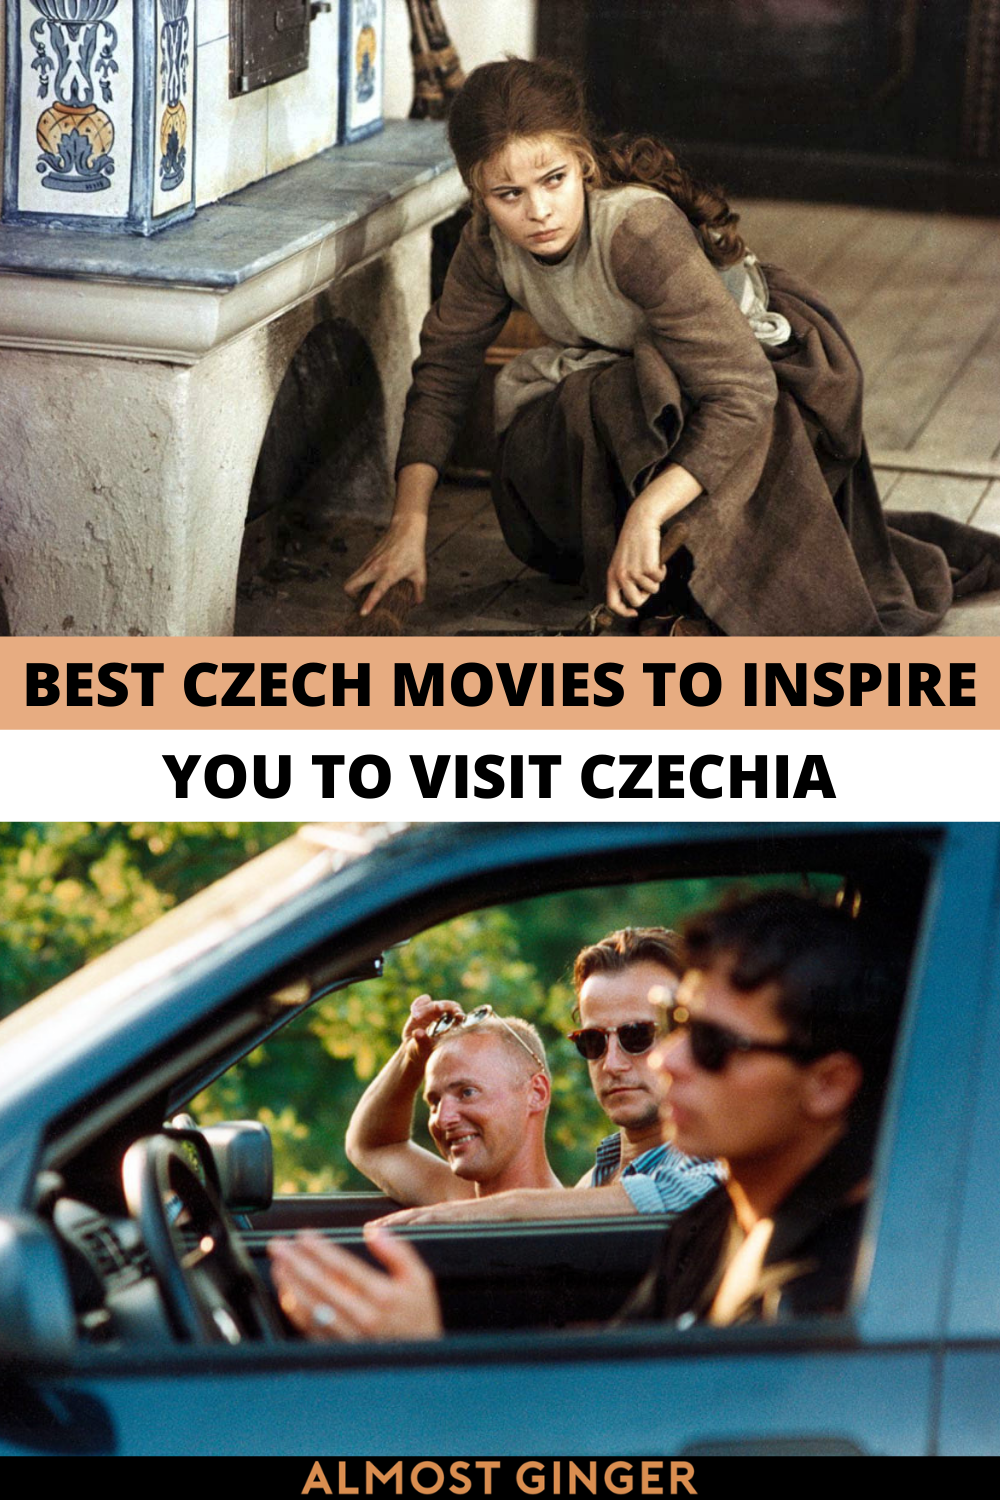 17 Best Czech Movies to Inspire You to Visit Czechia | almostginger.com